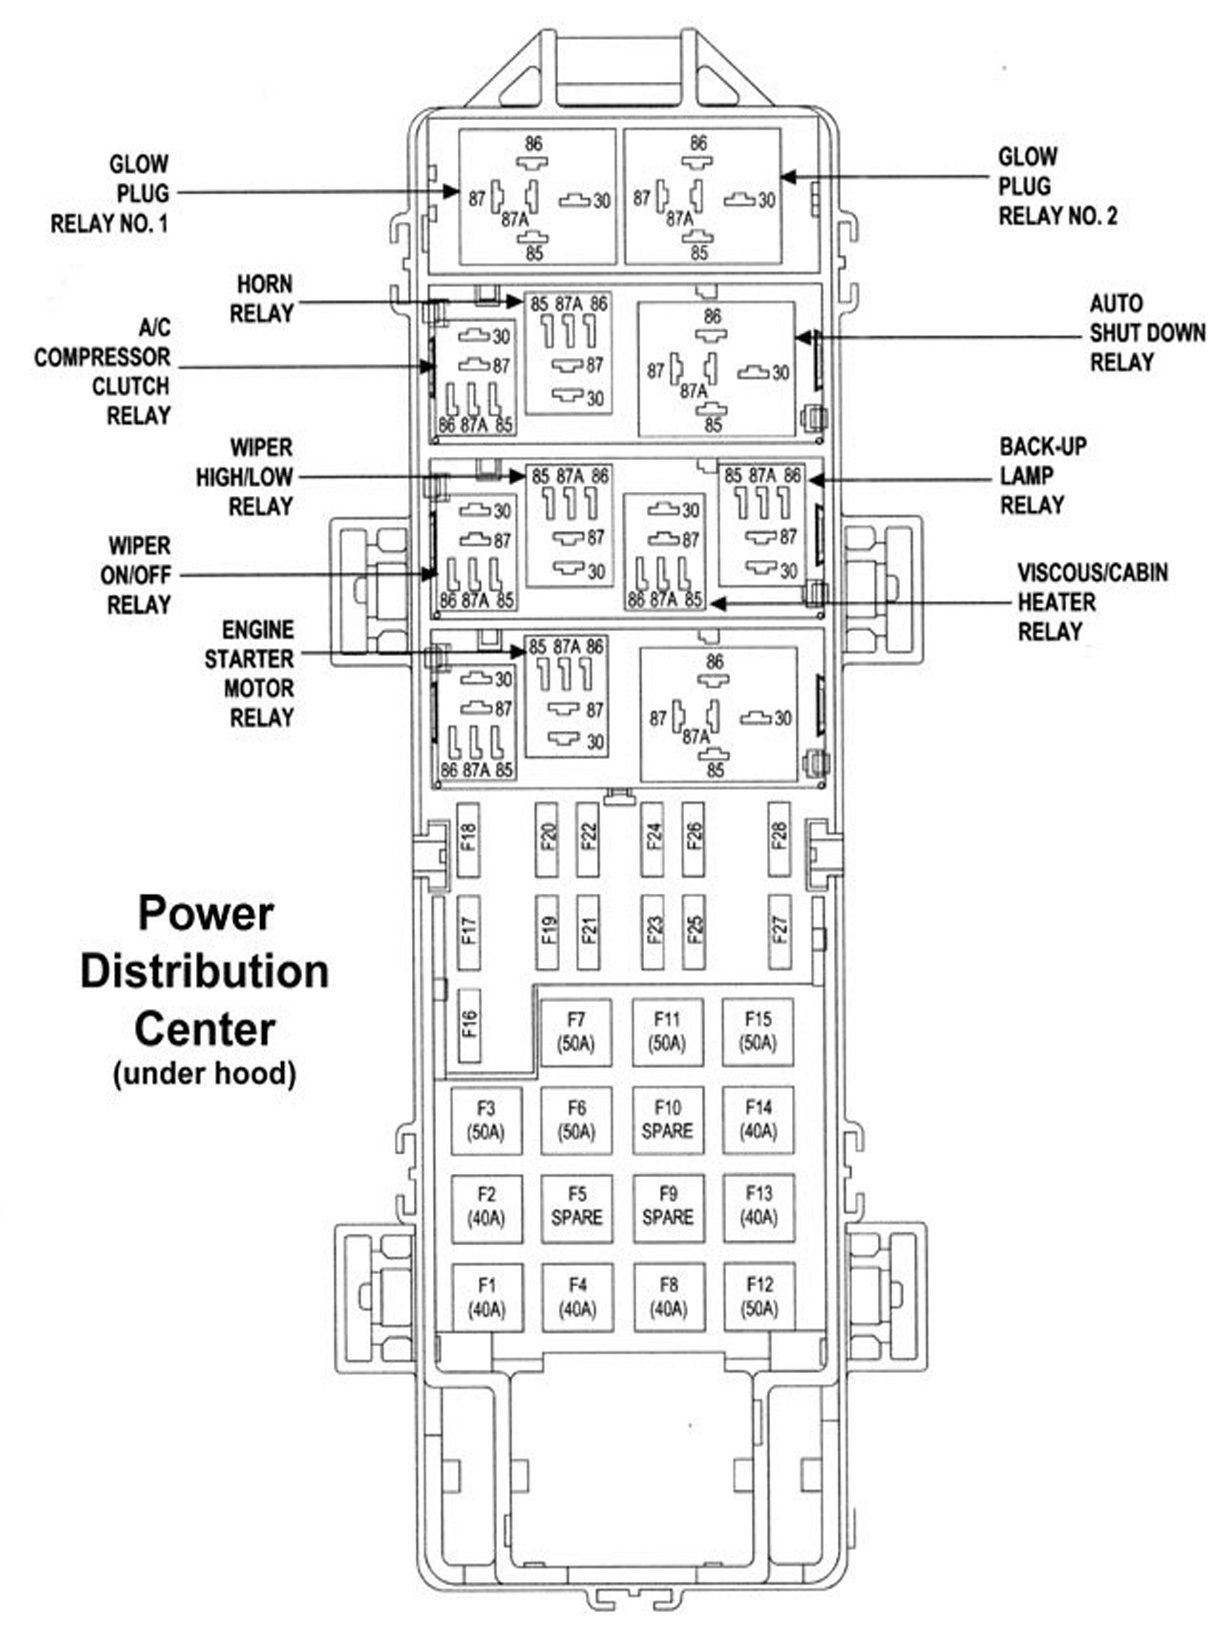 hight resolution of fuse box diagram 2004 jeep wrangler sport wiring diagram databasejeep grand cherokee wj to fuse box